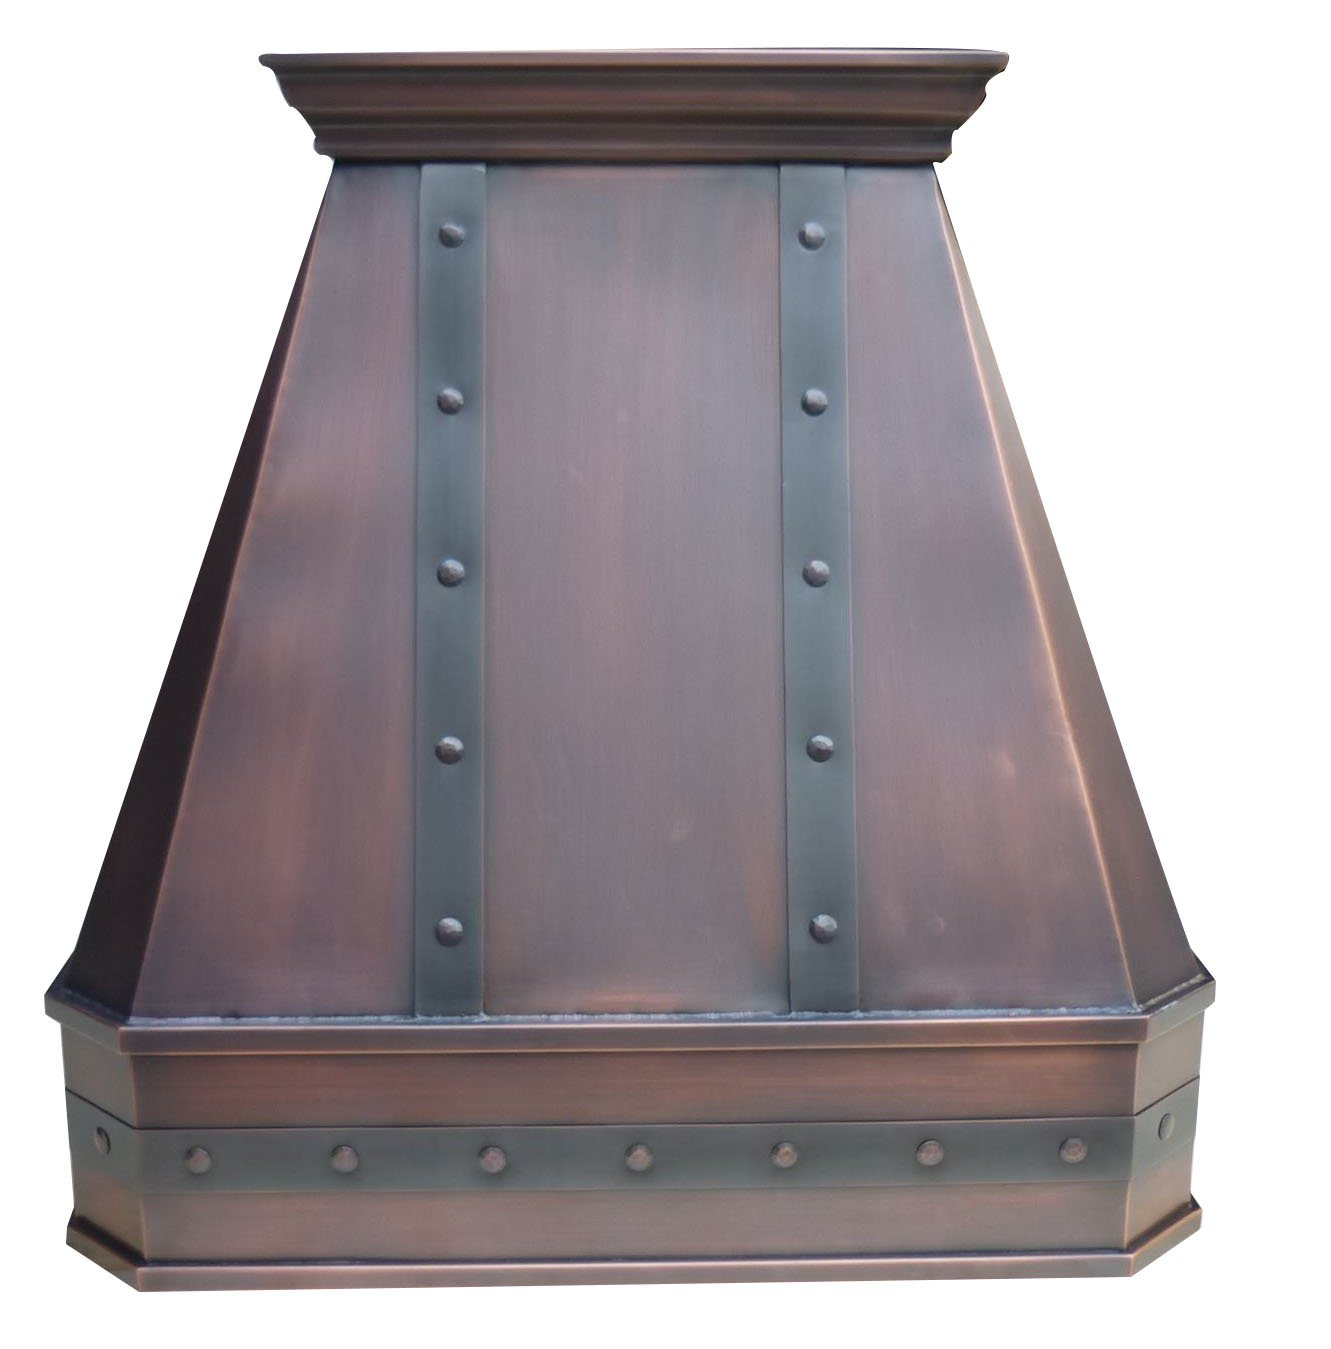 Custom Copper Stove Hood Simple Design Comes with Range Hood Insert Sinda H14STR